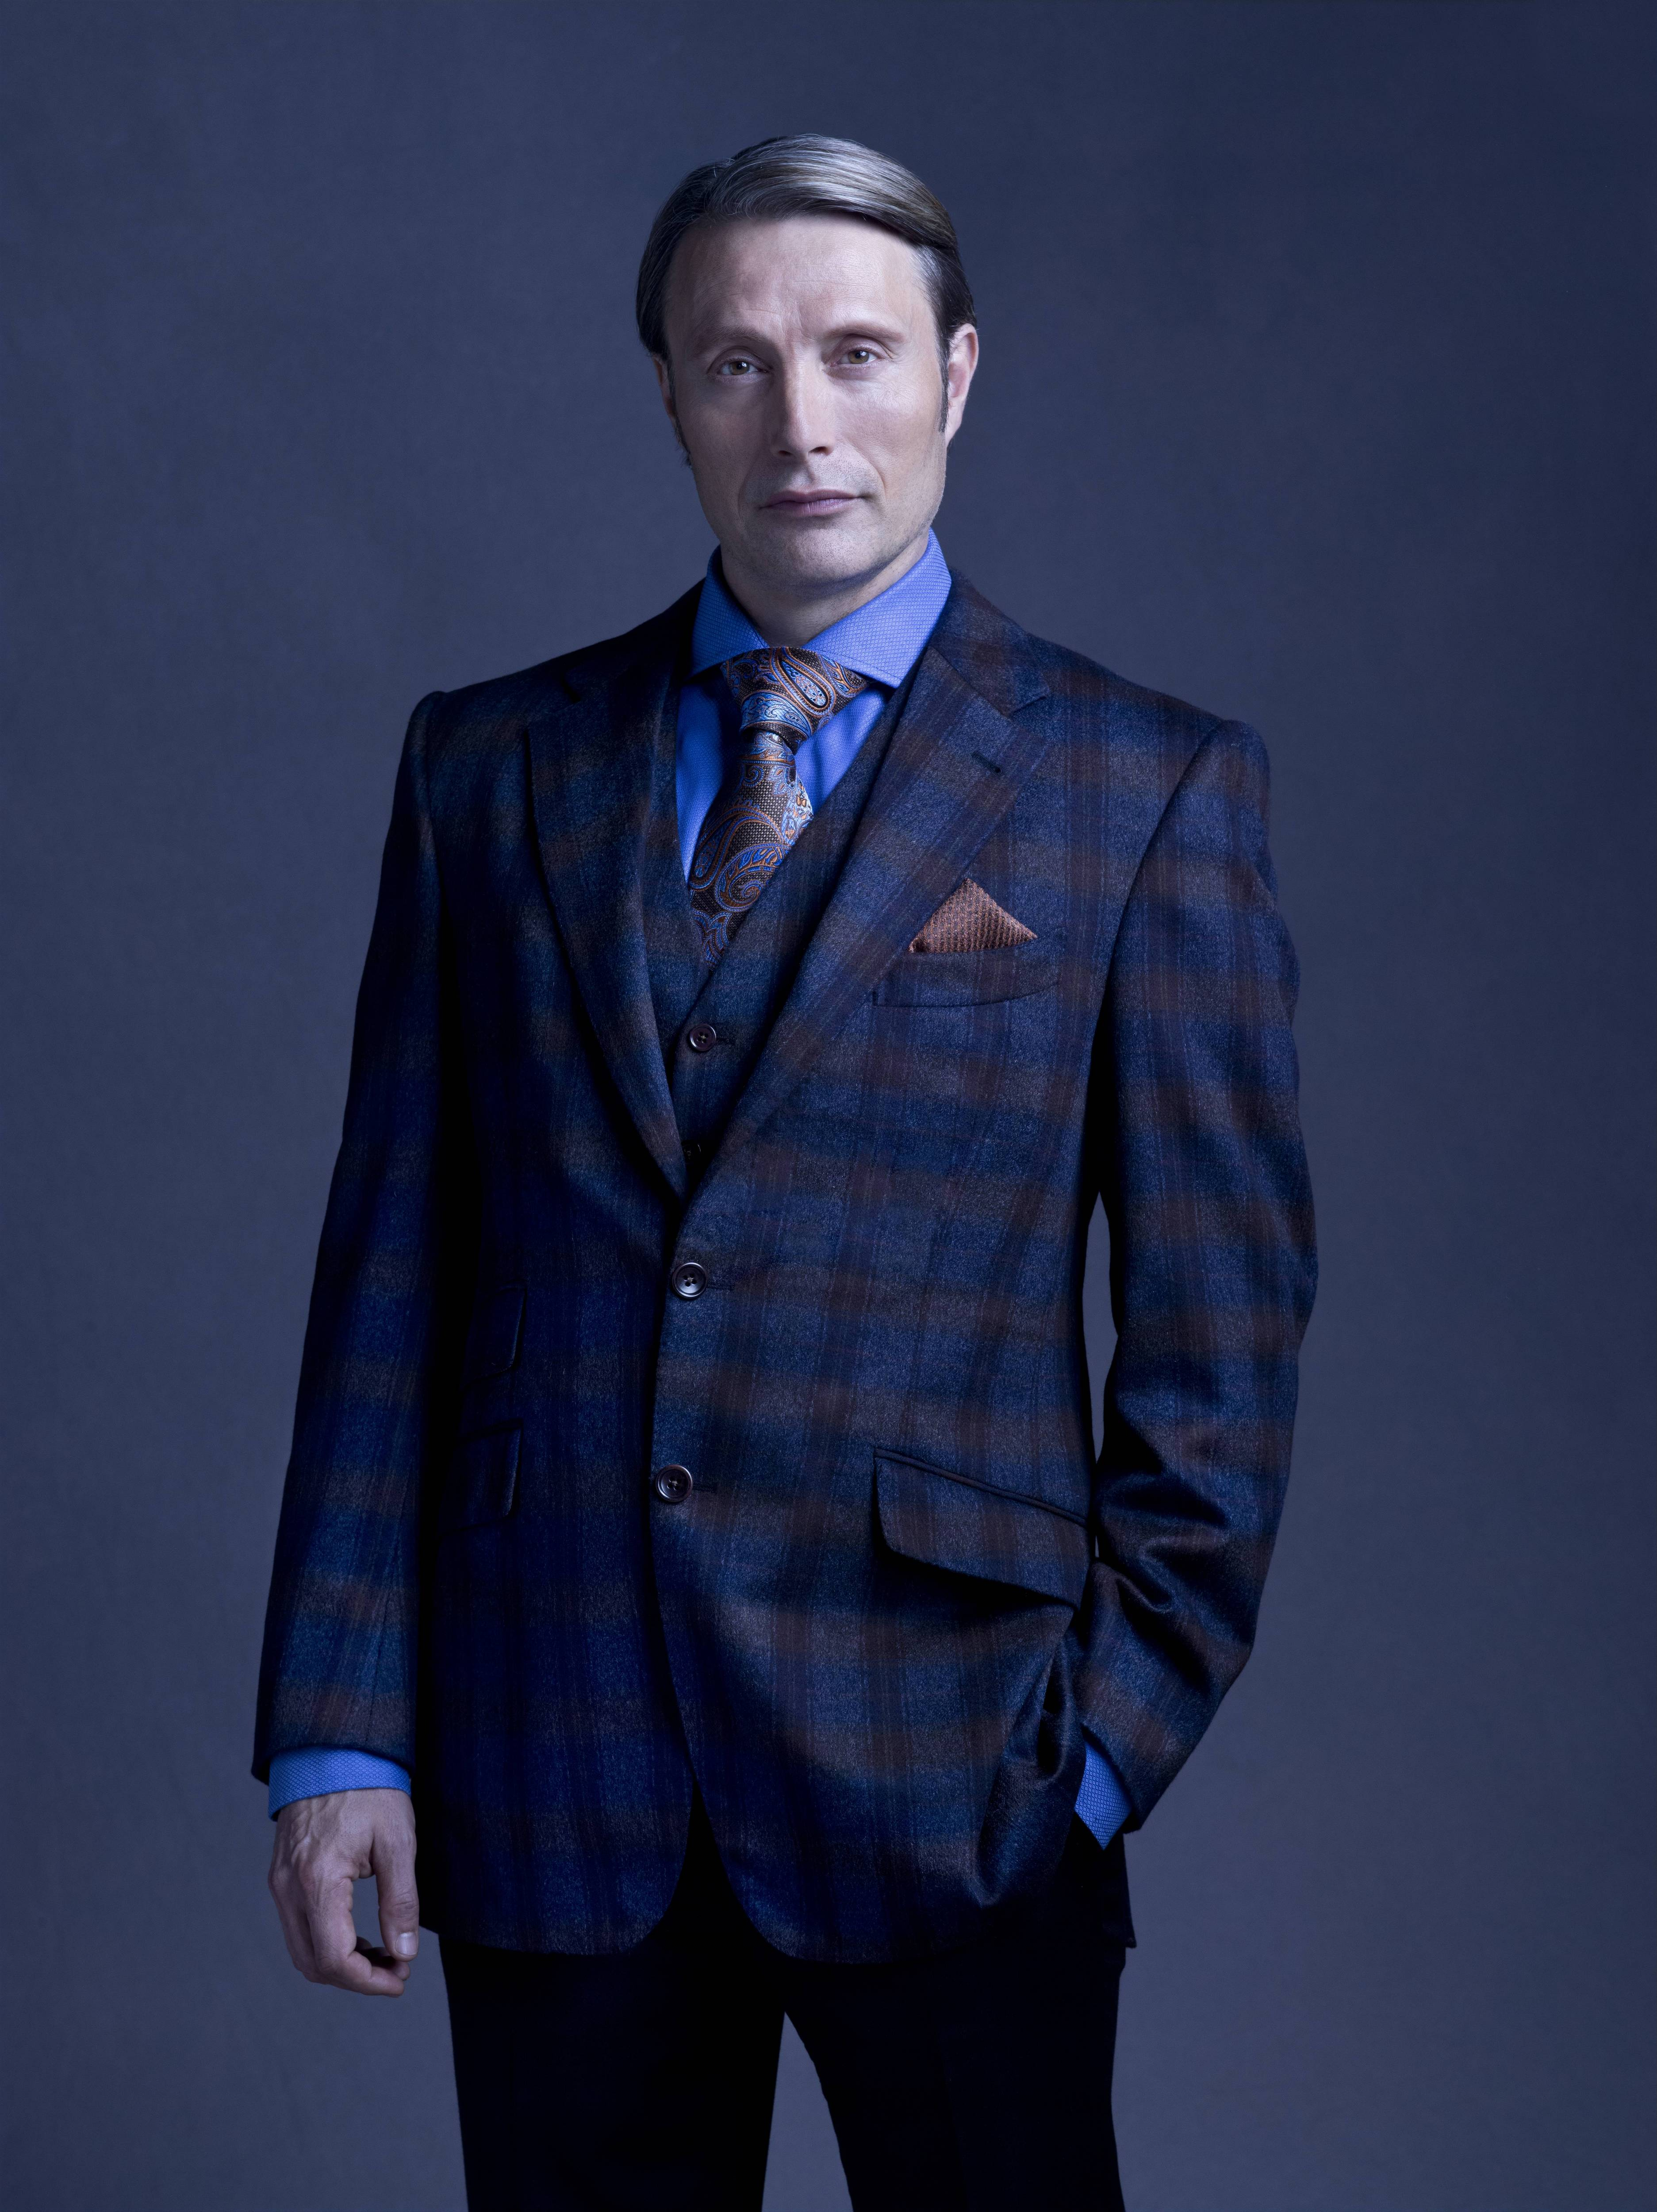 [Image: 10-Best-Dressed-TV-Stars-And-Shows-Hanni...nibal1.jpg]